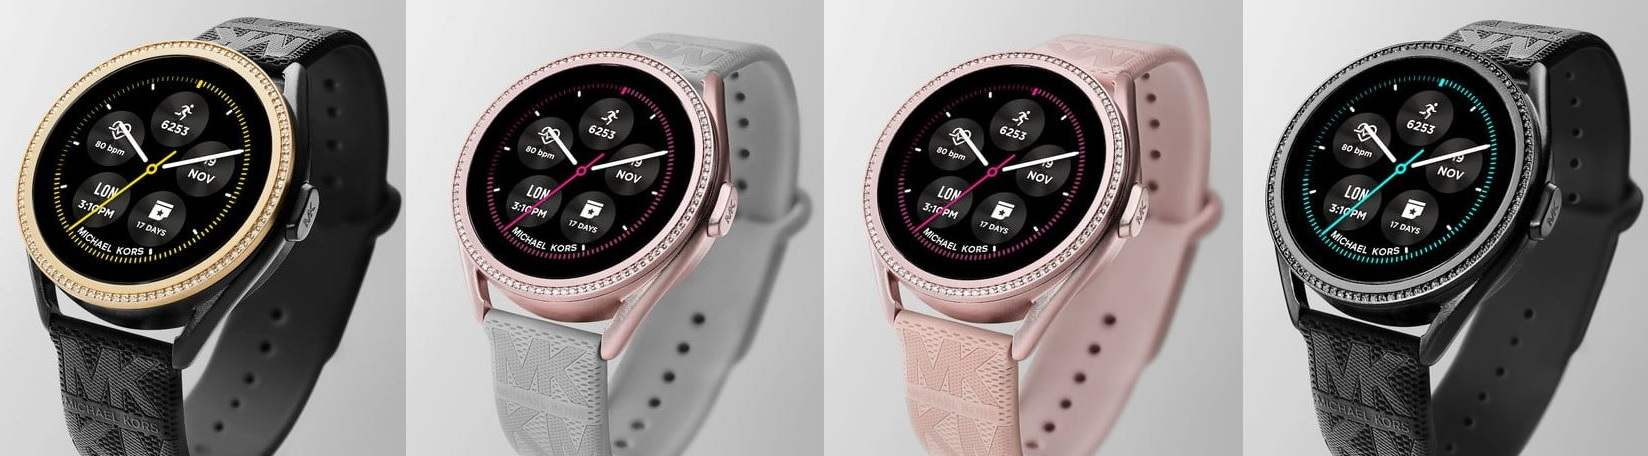 michael kors access mkgo 5e smartwatches